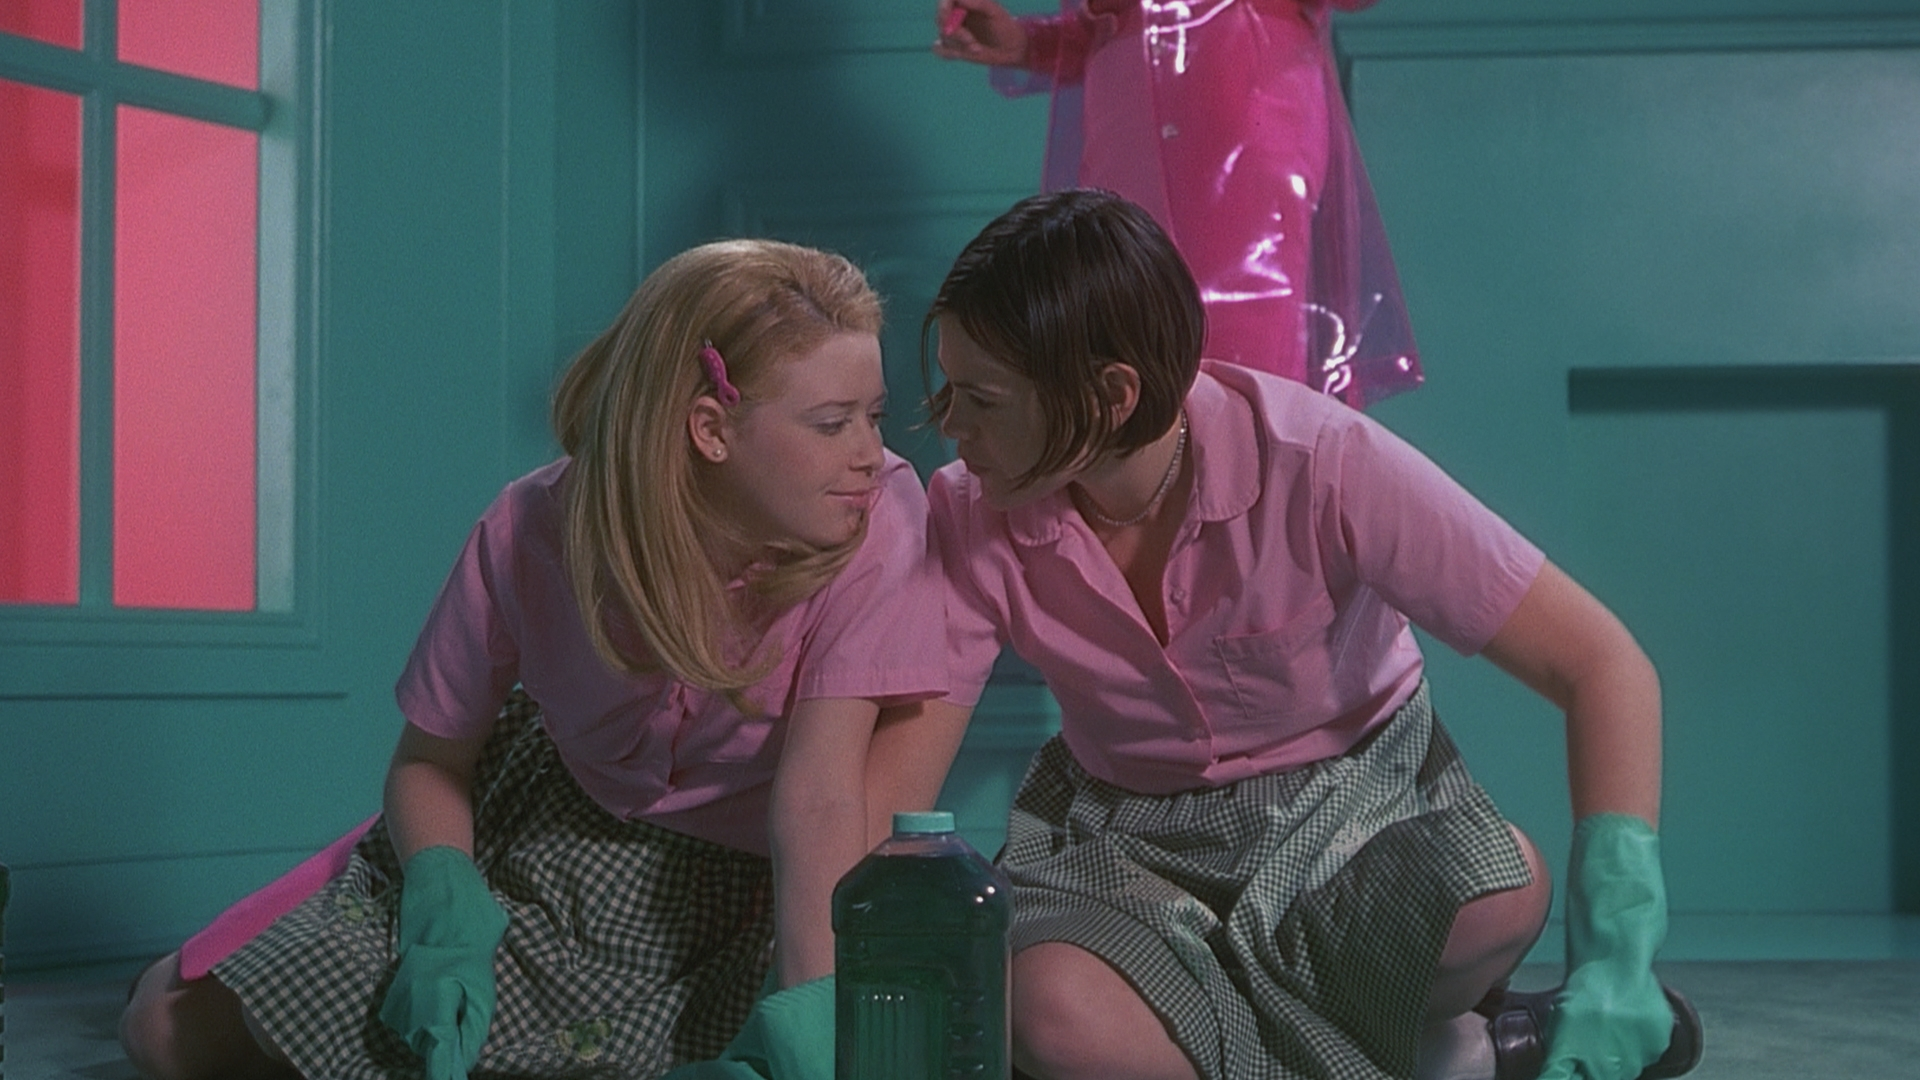 Megan and Graham take a break from scrubbing the floor to stare into each other's eyes. Both are wearing pink uniforms and rubber gloves.